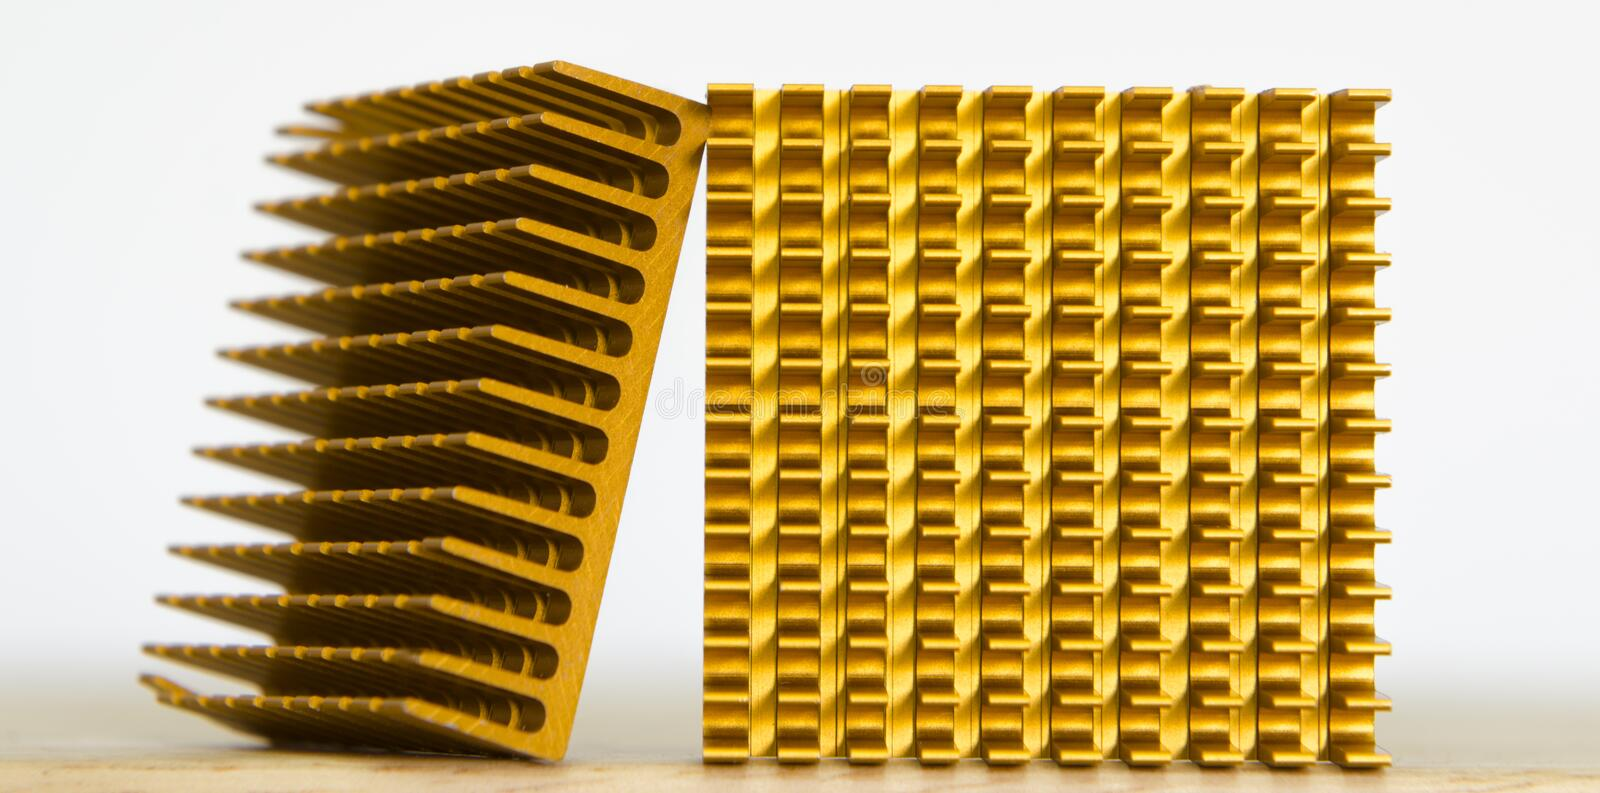 Copper Cooler Heat Sink Closeup, Background Textured Pattern Ab royalty free stock photos